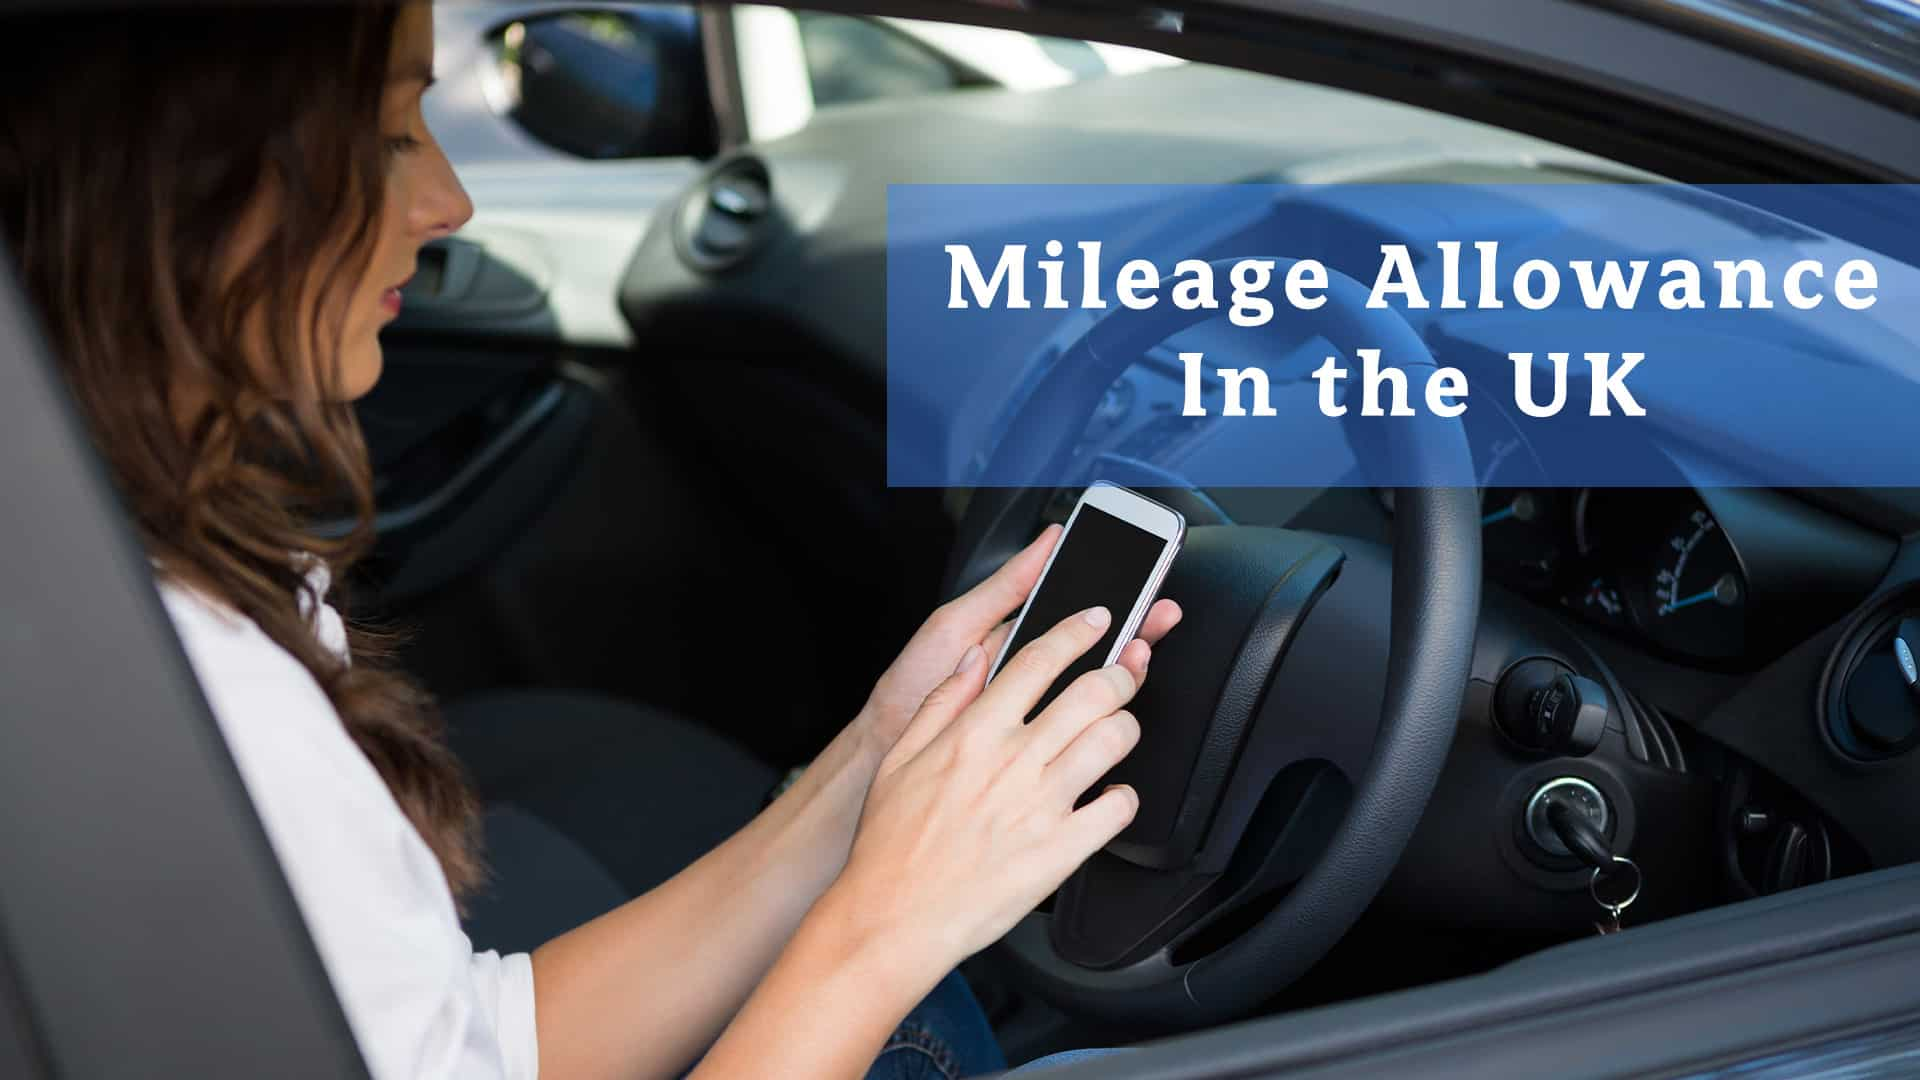 mileage allowance uk MAP AMAP HMRC expense tracker triplog